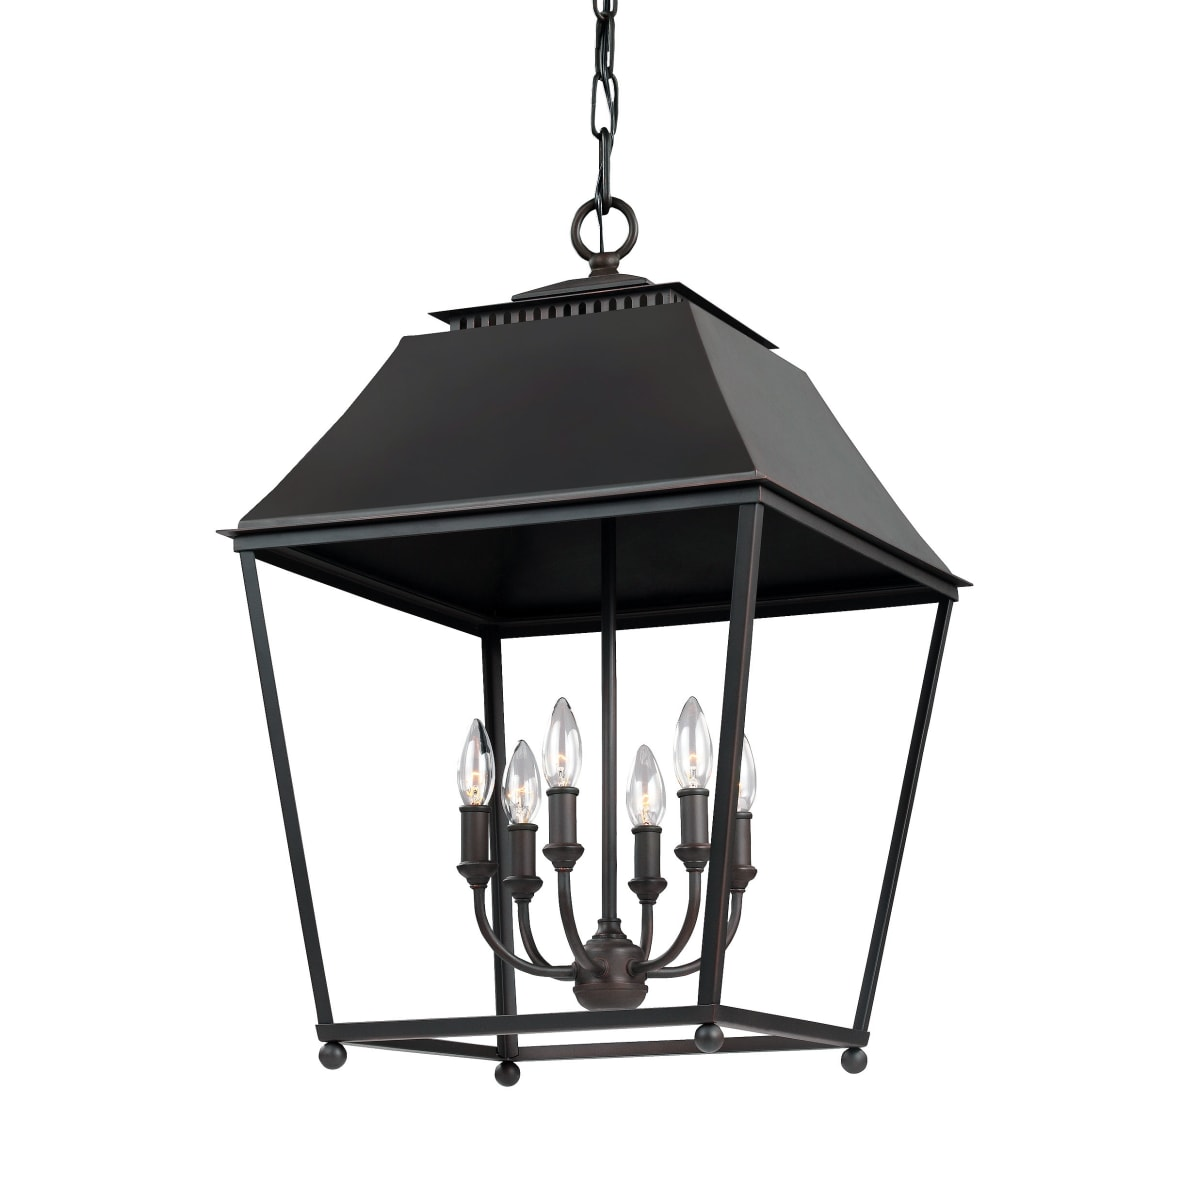 What a gorgeous oversized hanging lantern chandelier from Feiss (Galloway)  for a French farmhouse kitchen or dining room! Come discover more French Farmhouse Decor inspired by Fixer Upper and click here to Get the Look of The Club House Kitchen & Sun Room. #fixerupper #joannagaines #kitchendecor #frenchfarmhouse